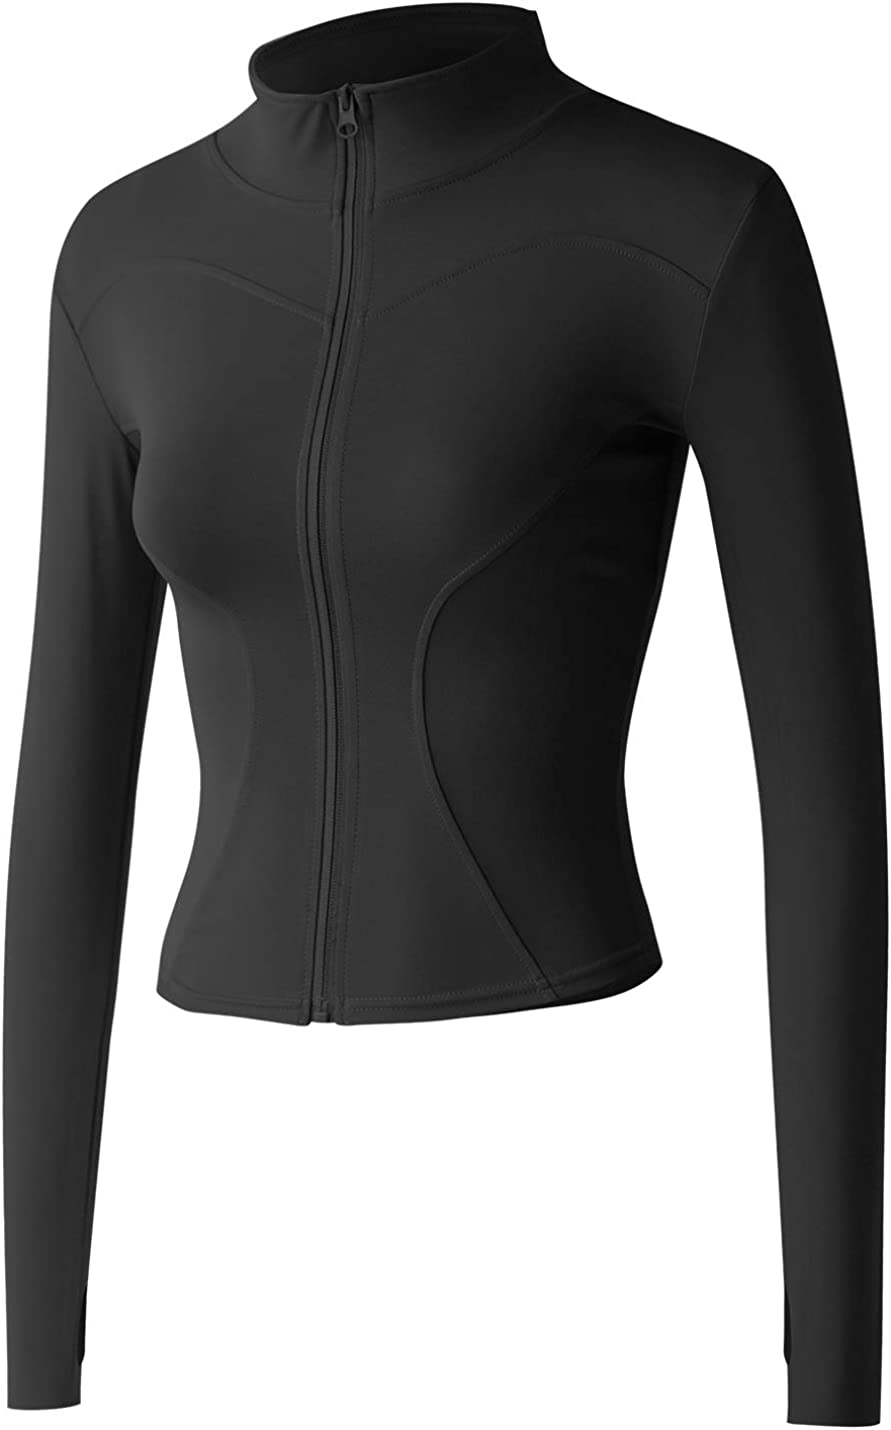 Sehcahe Women's Stretchy Lightweight Fu Max 64% OFF Athletic Jackets Workout Fashion